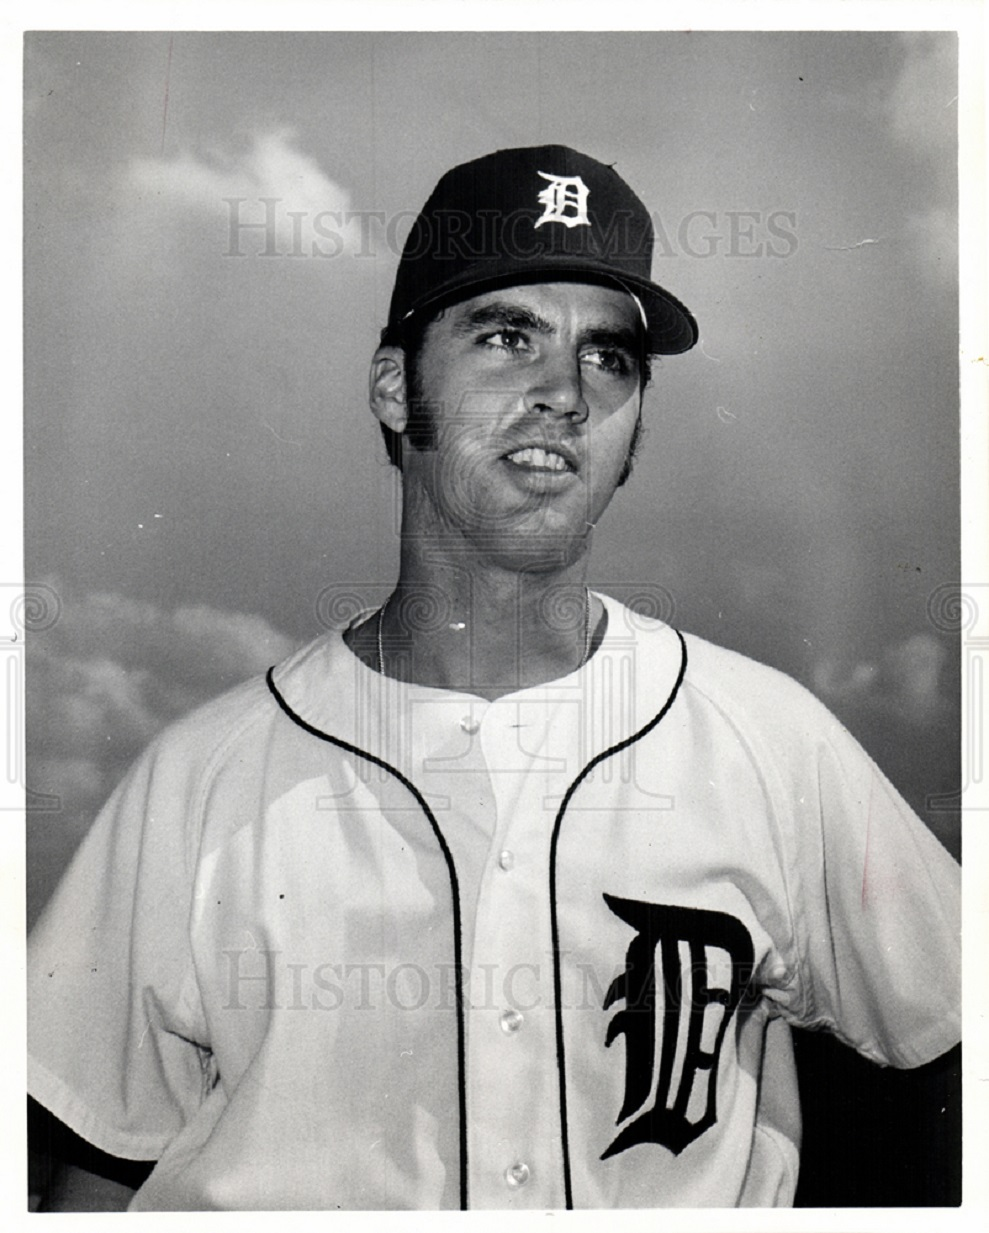 LHP Mike Kilkenny (Bradford, Ont.) was part of the Tigers Canadian connection signed by Bobby Prentice.